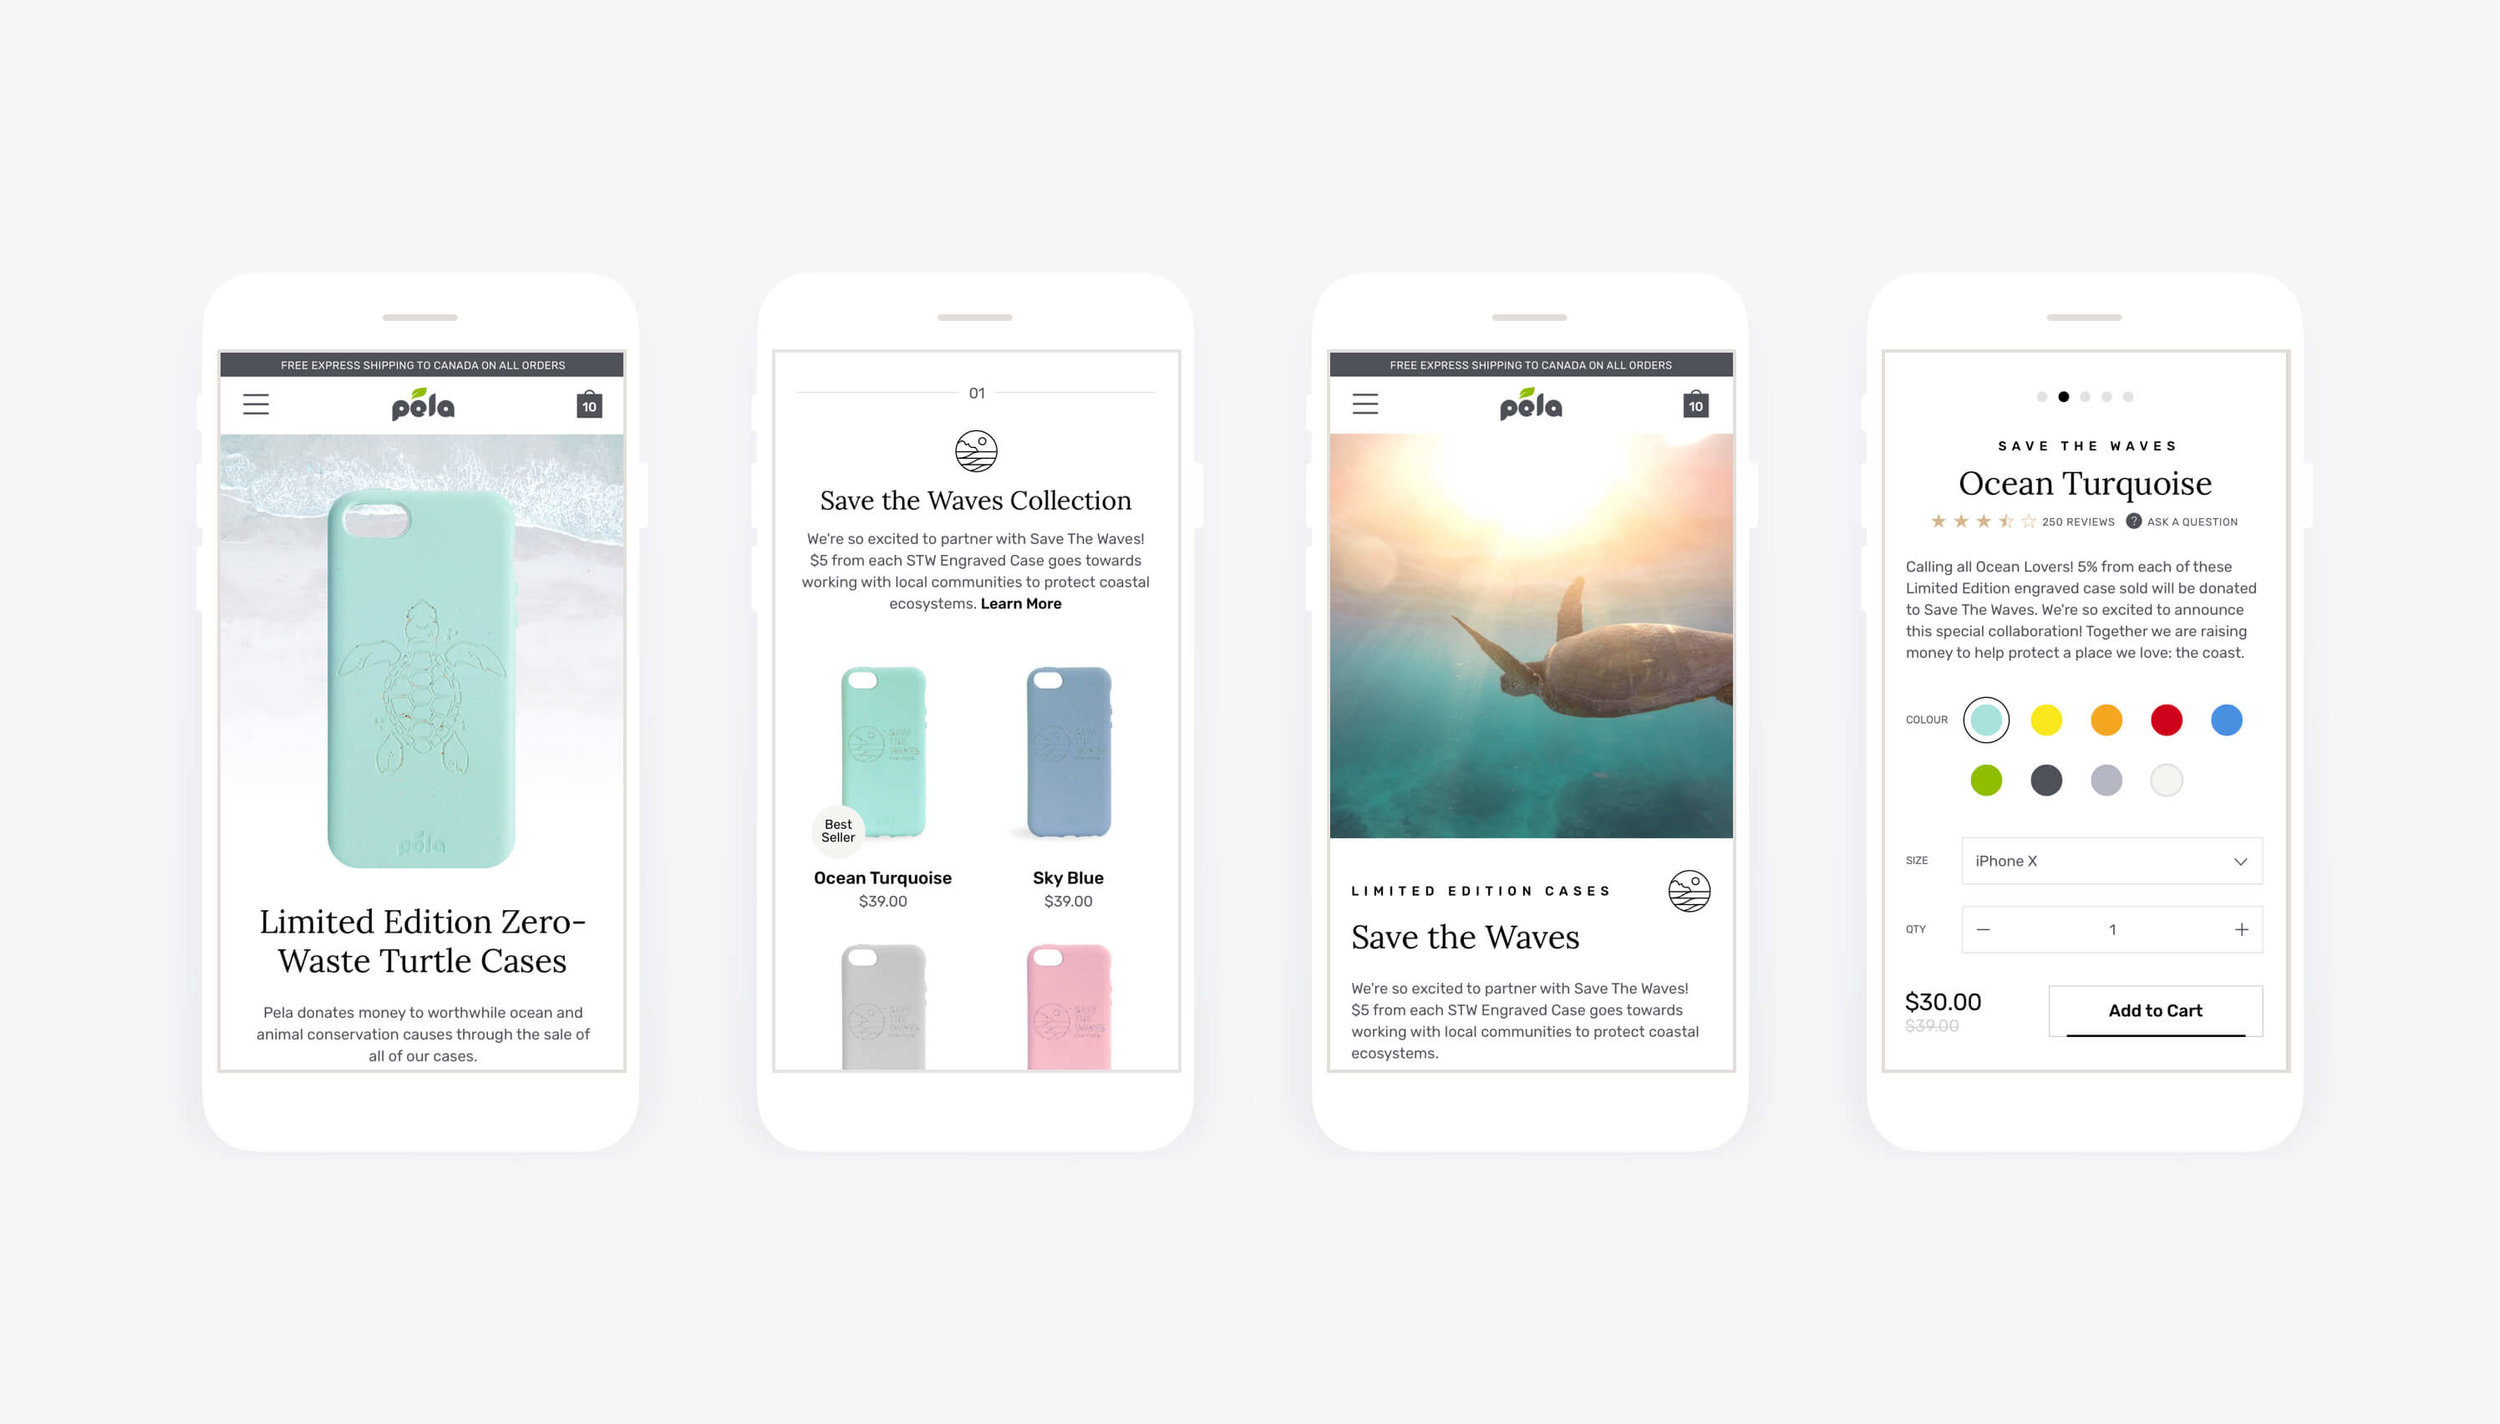 Image: Mobile Homepage designs. Design and asset creation by Julio Wong, Lead UI Designer